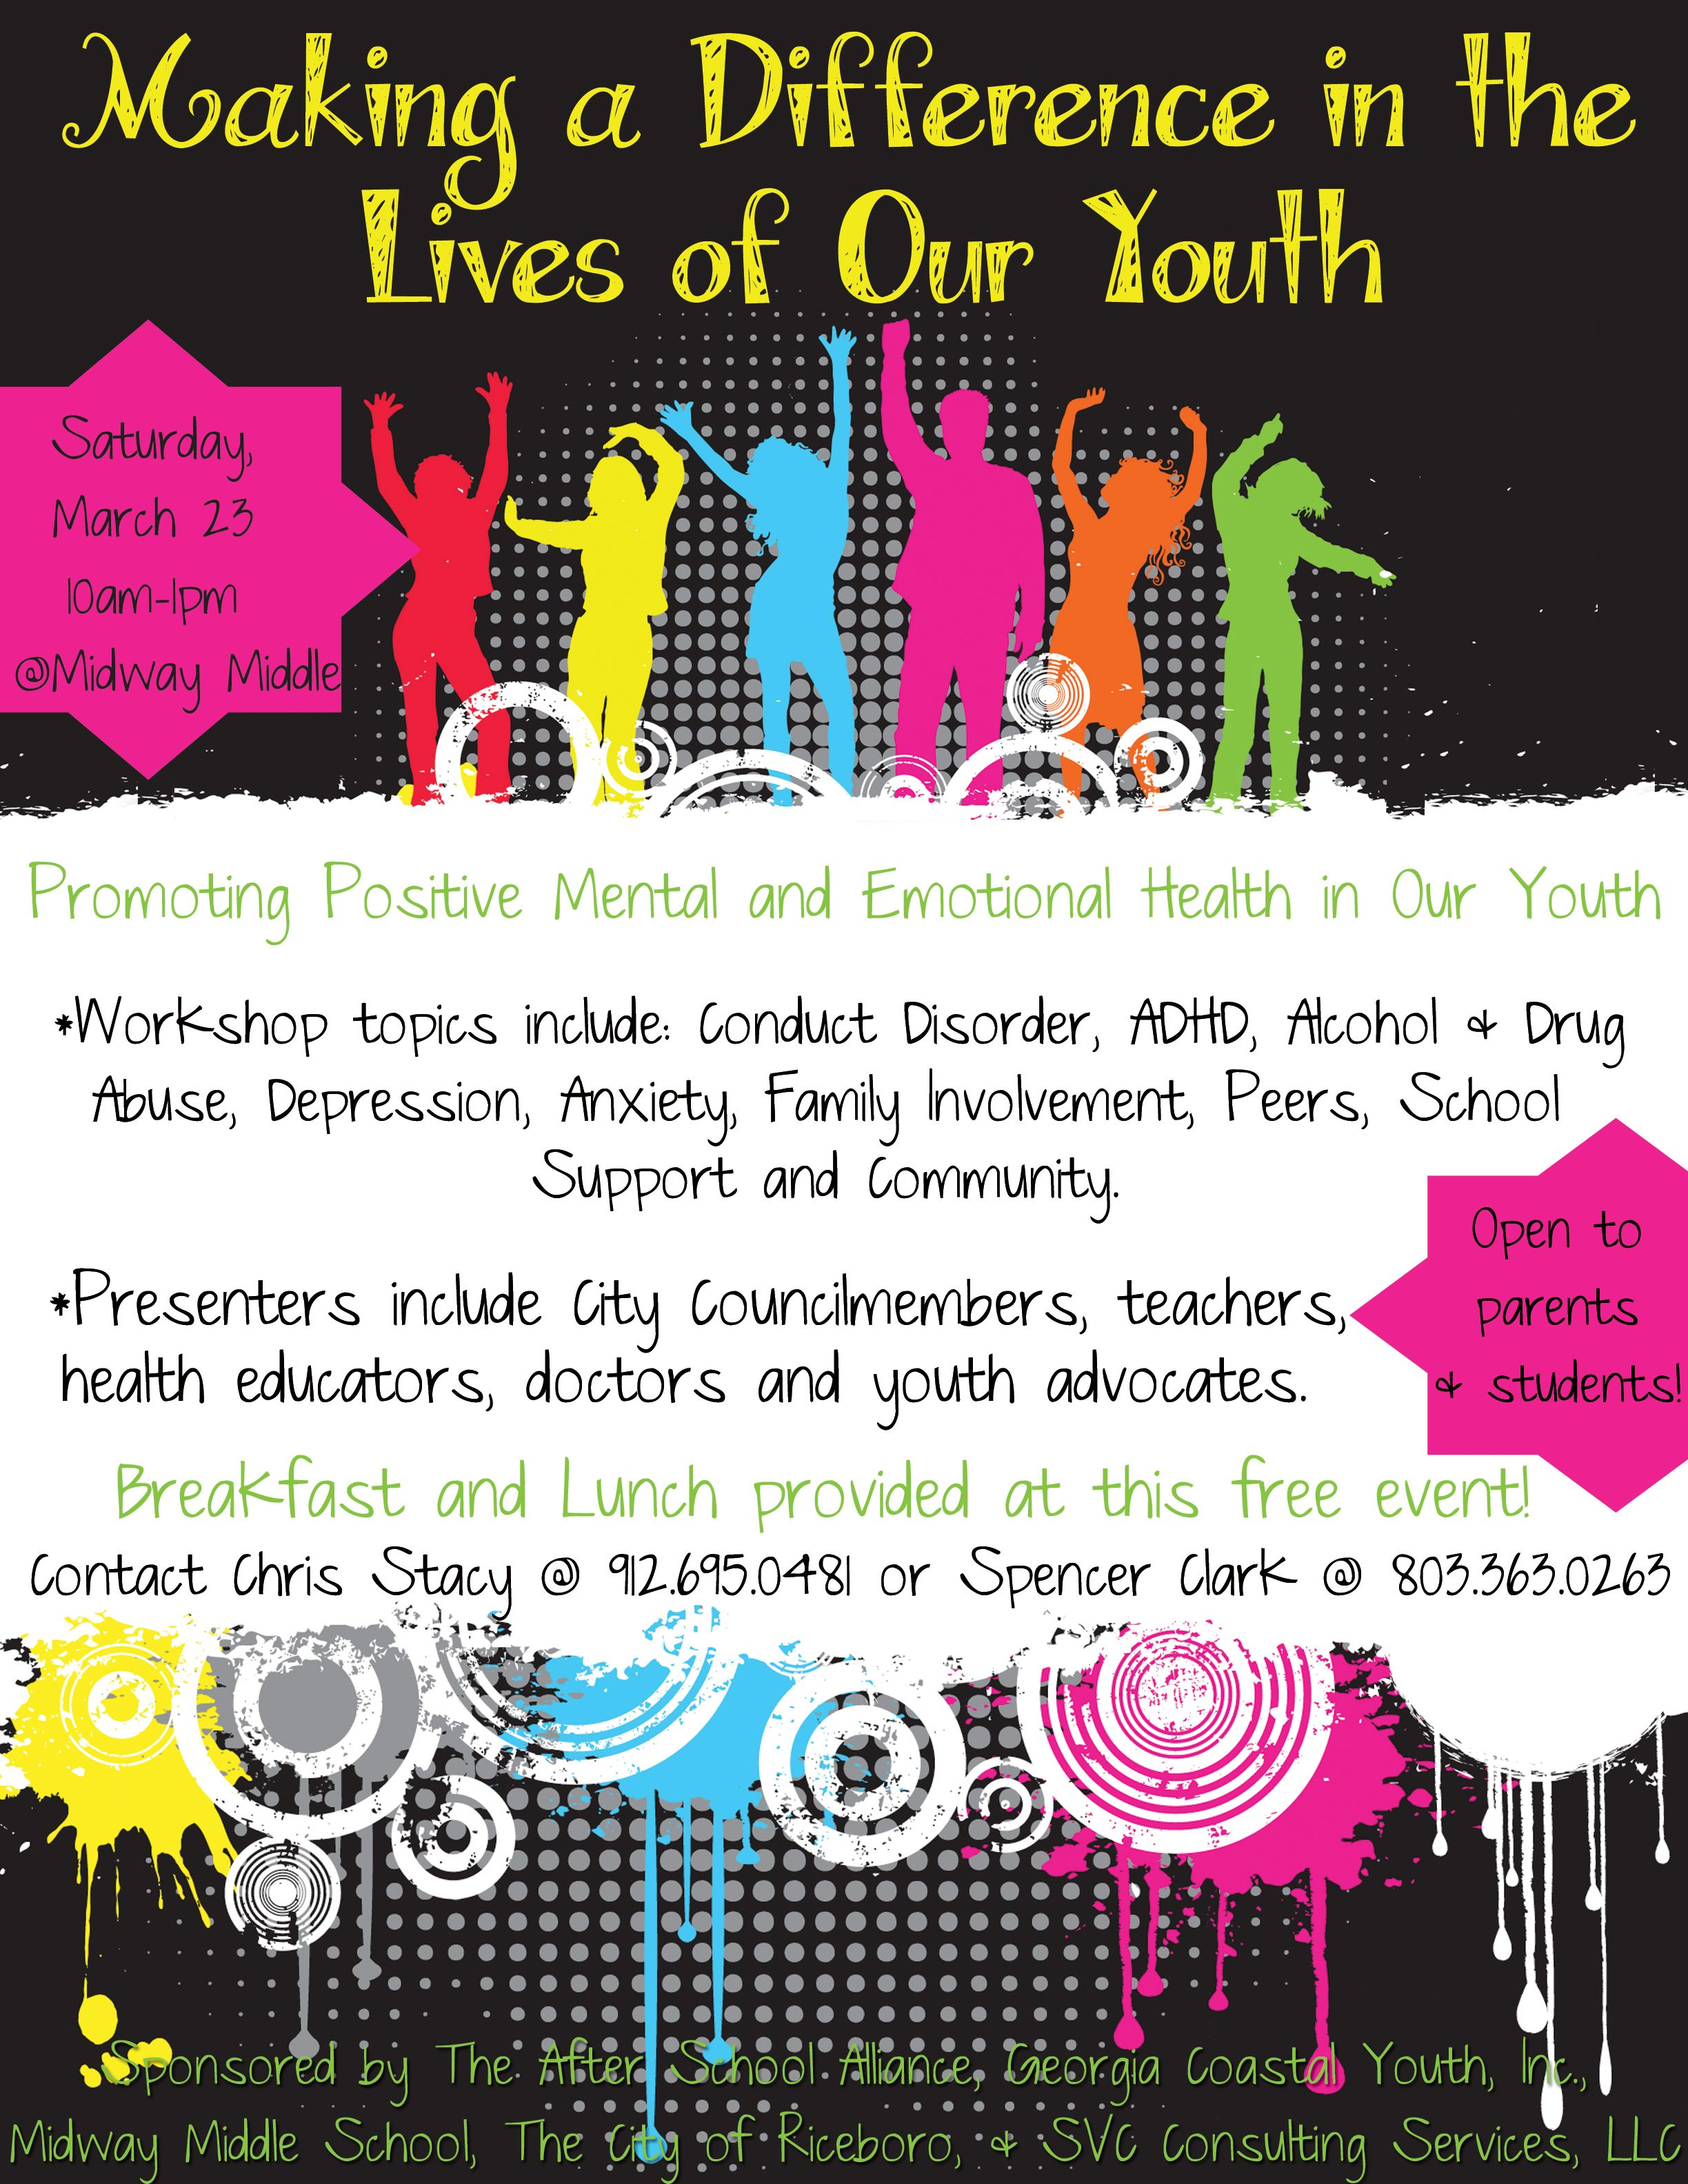 Make a difference in the lives of our youth